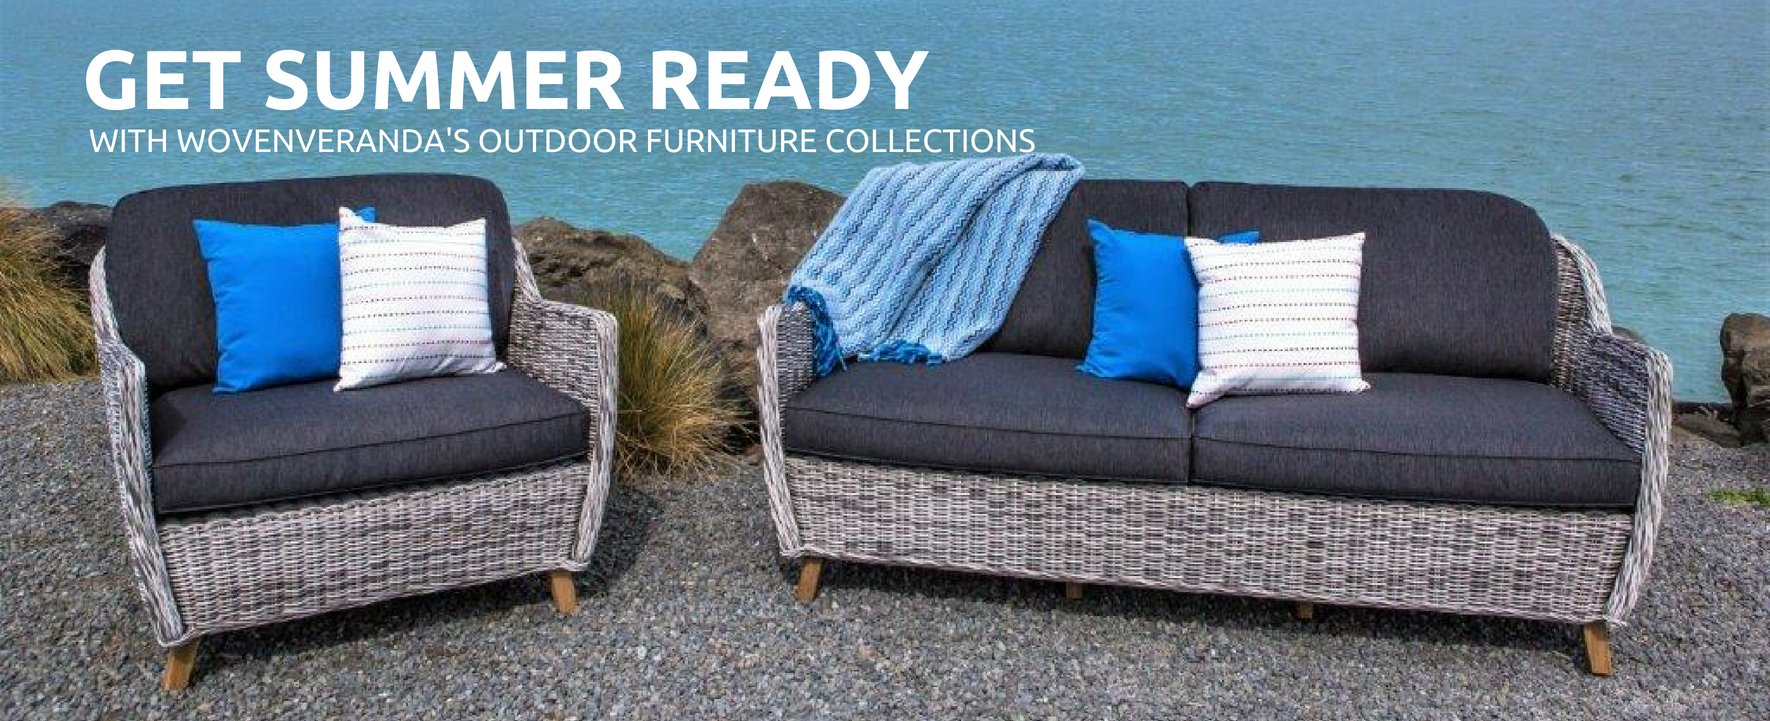 Woven Veranda Outdoor Wicker Rattan Furniture Store In Nz Woven Veranda